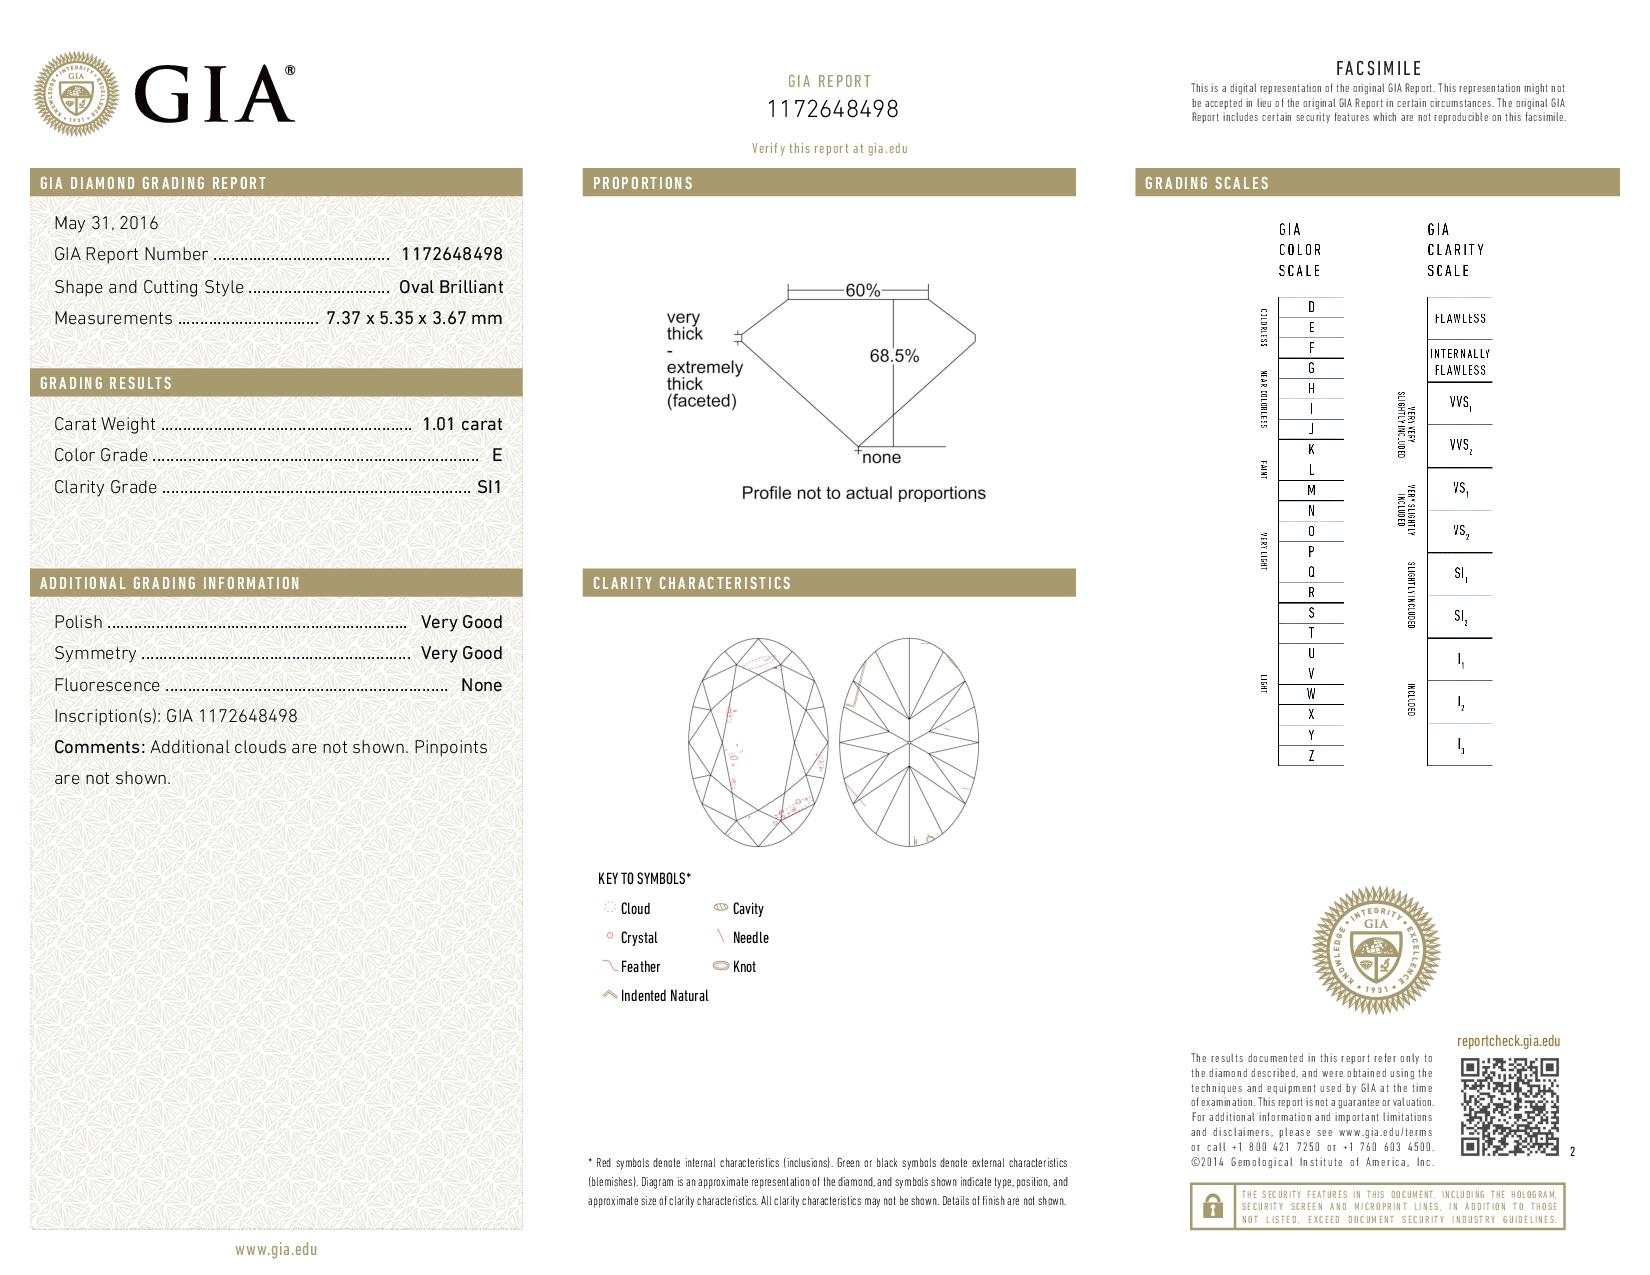 This is a 1.01 carat oval shape, E color, SI1 clarity natural diamond accompanied by a GIA grading report.